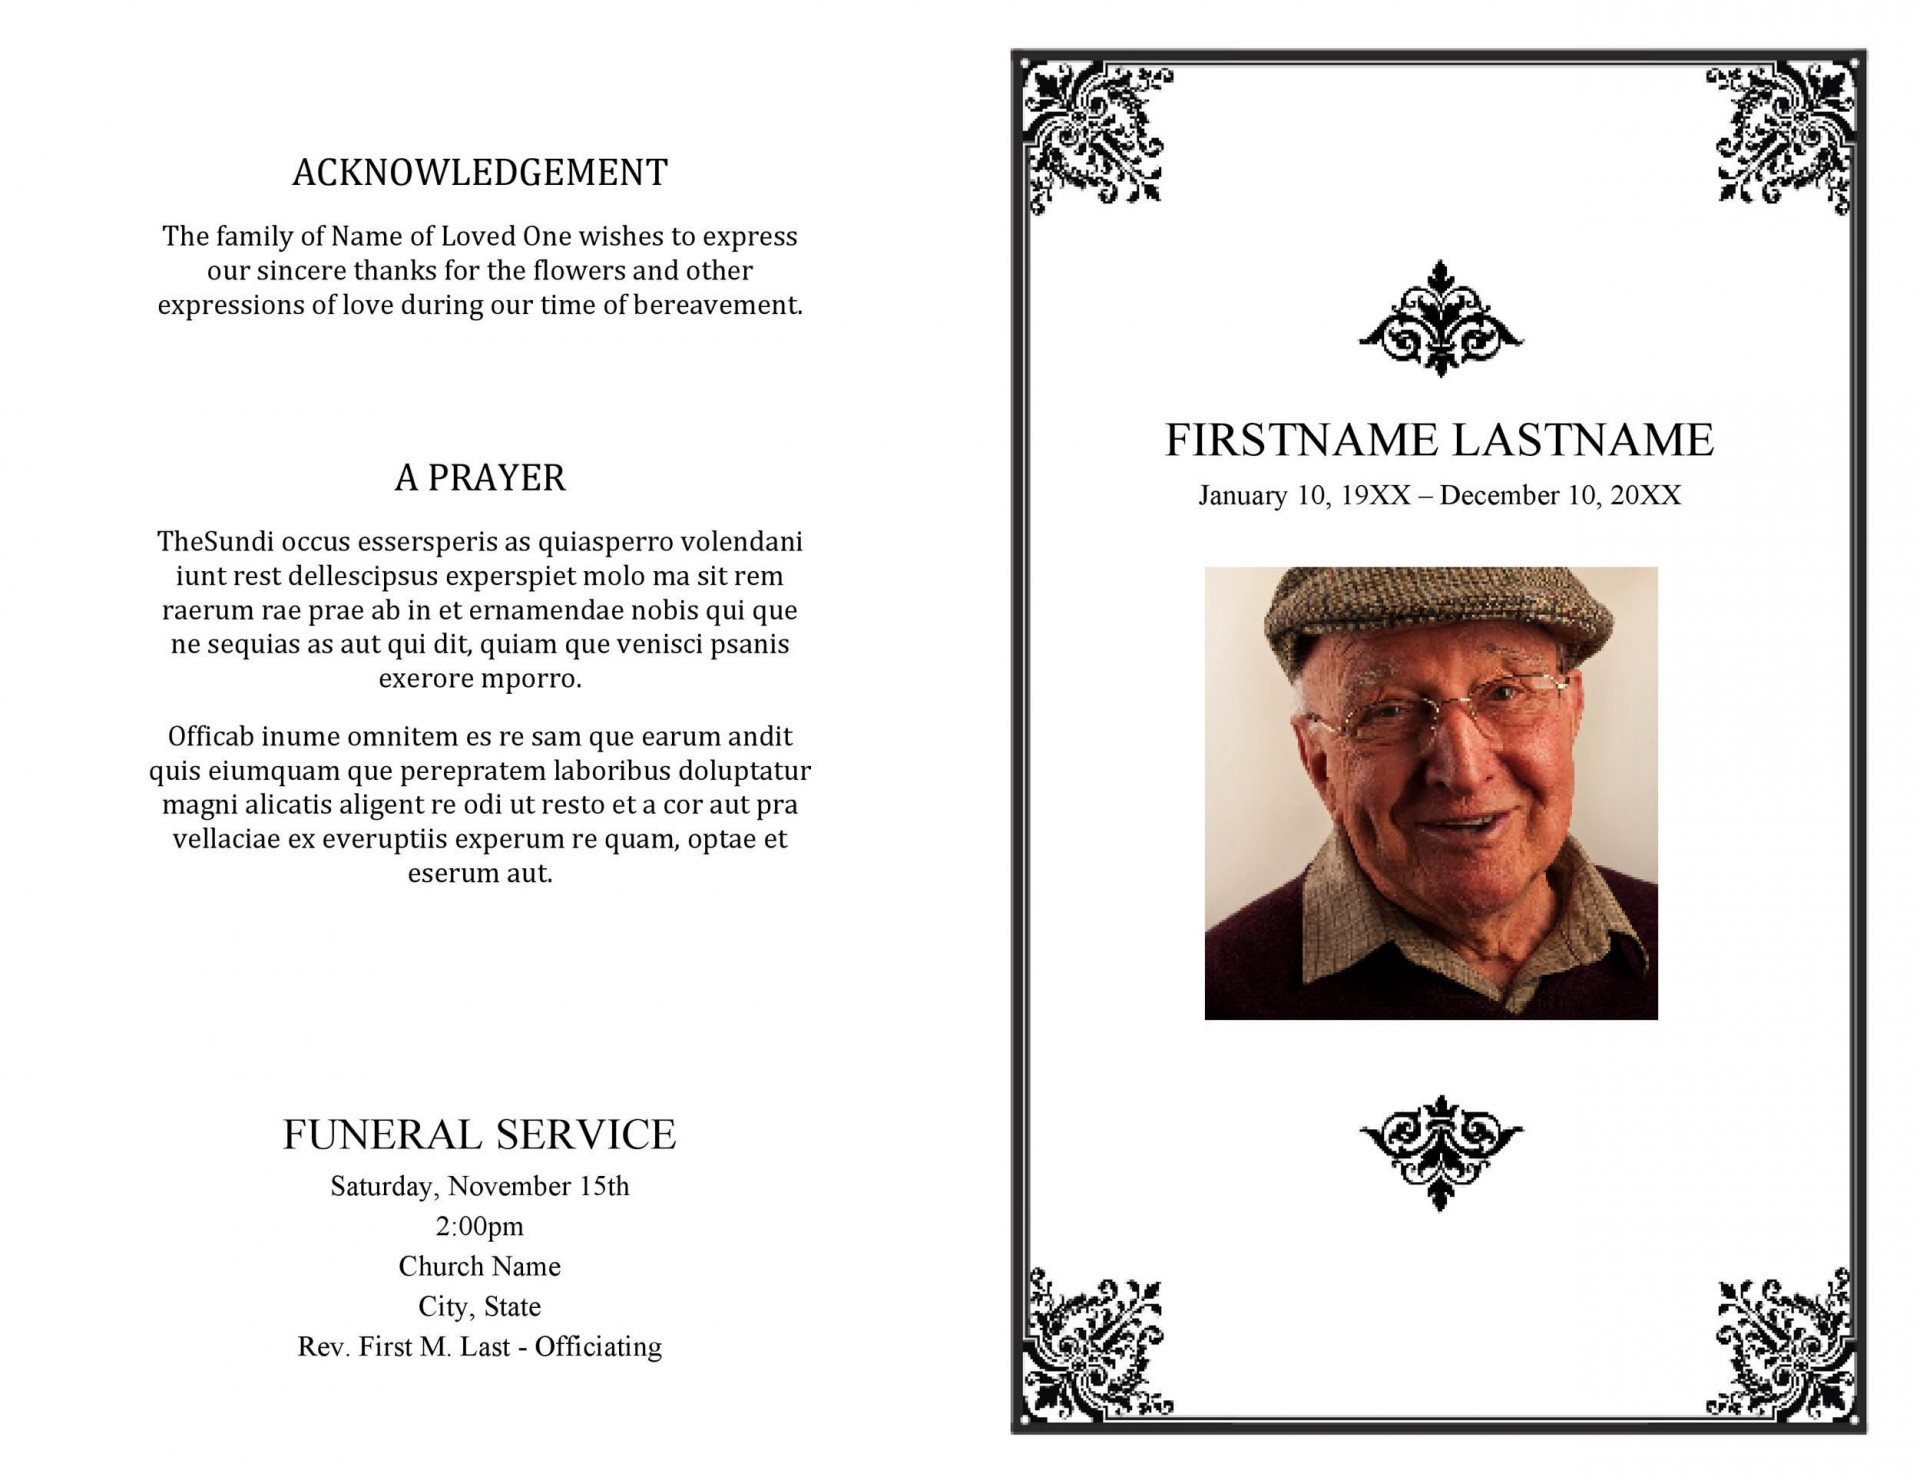 007 Unforgettable Free Download Template For Funeral Program Photo 1920